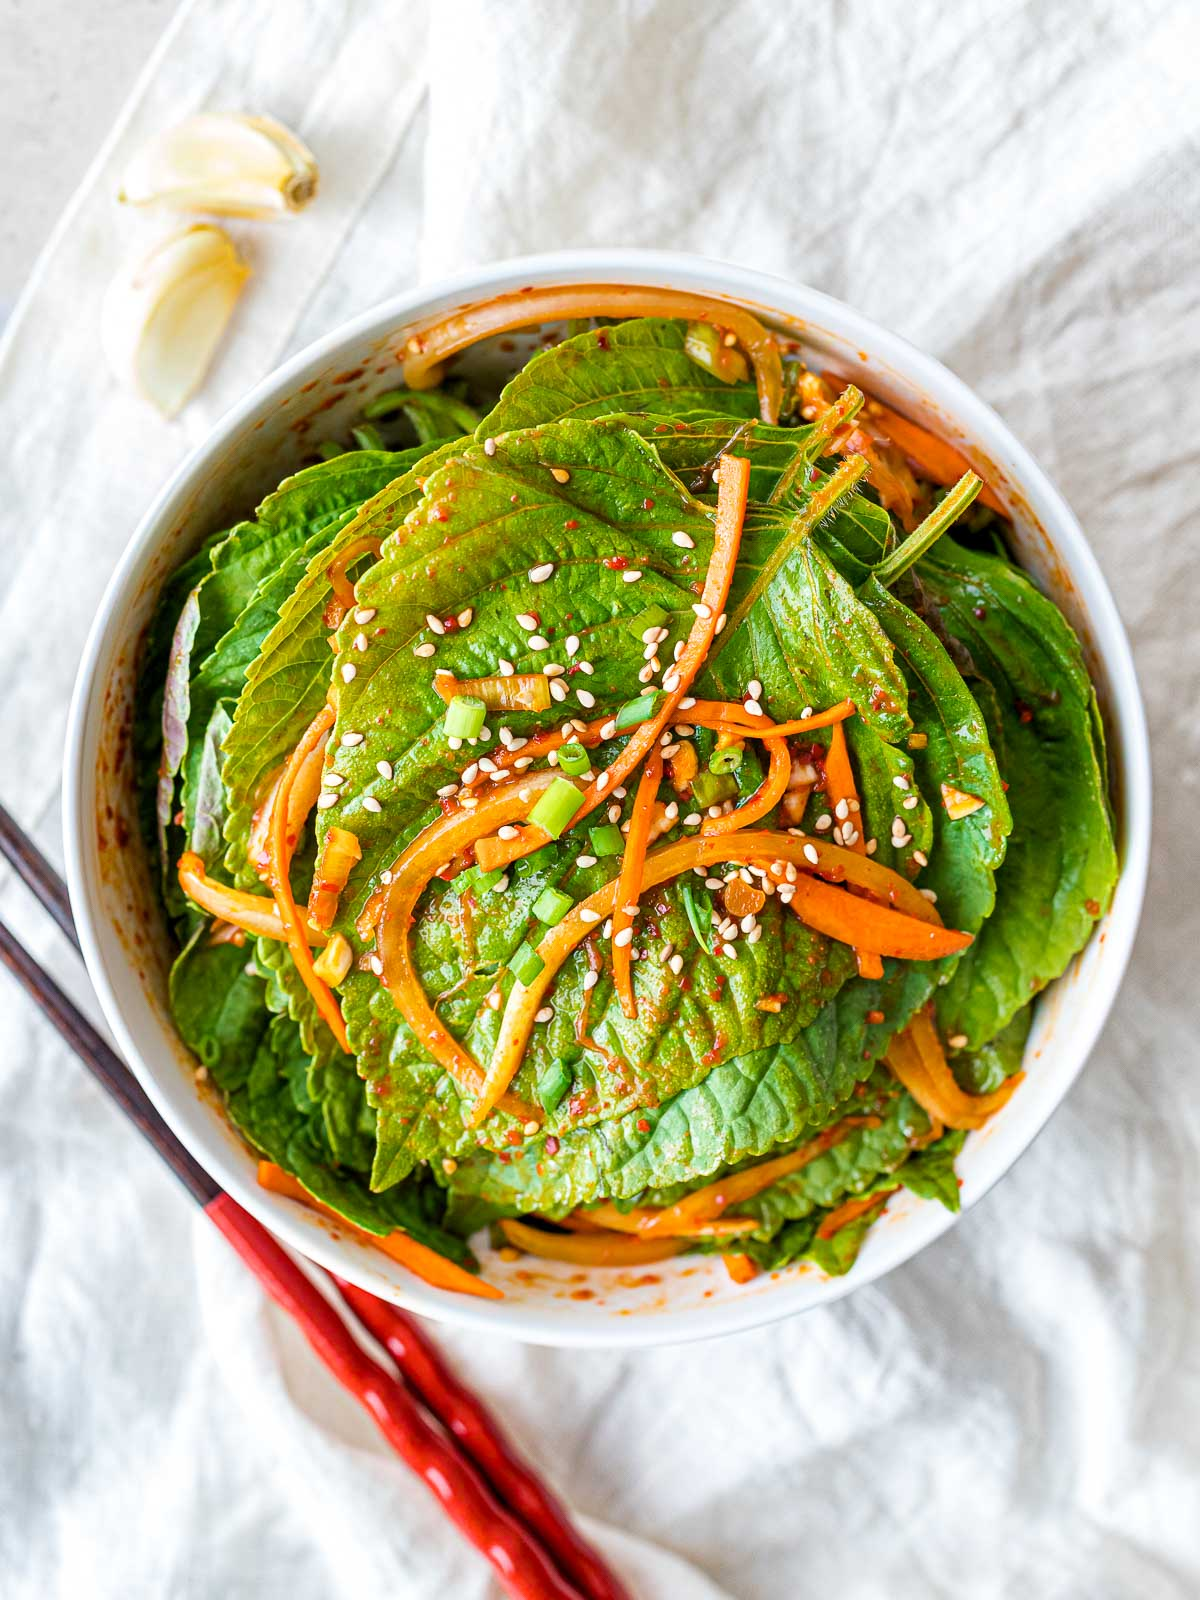 marinated Korean perilla leaf kimchi with red pepper flakes and carrots in a white bowl next to red chopsticks